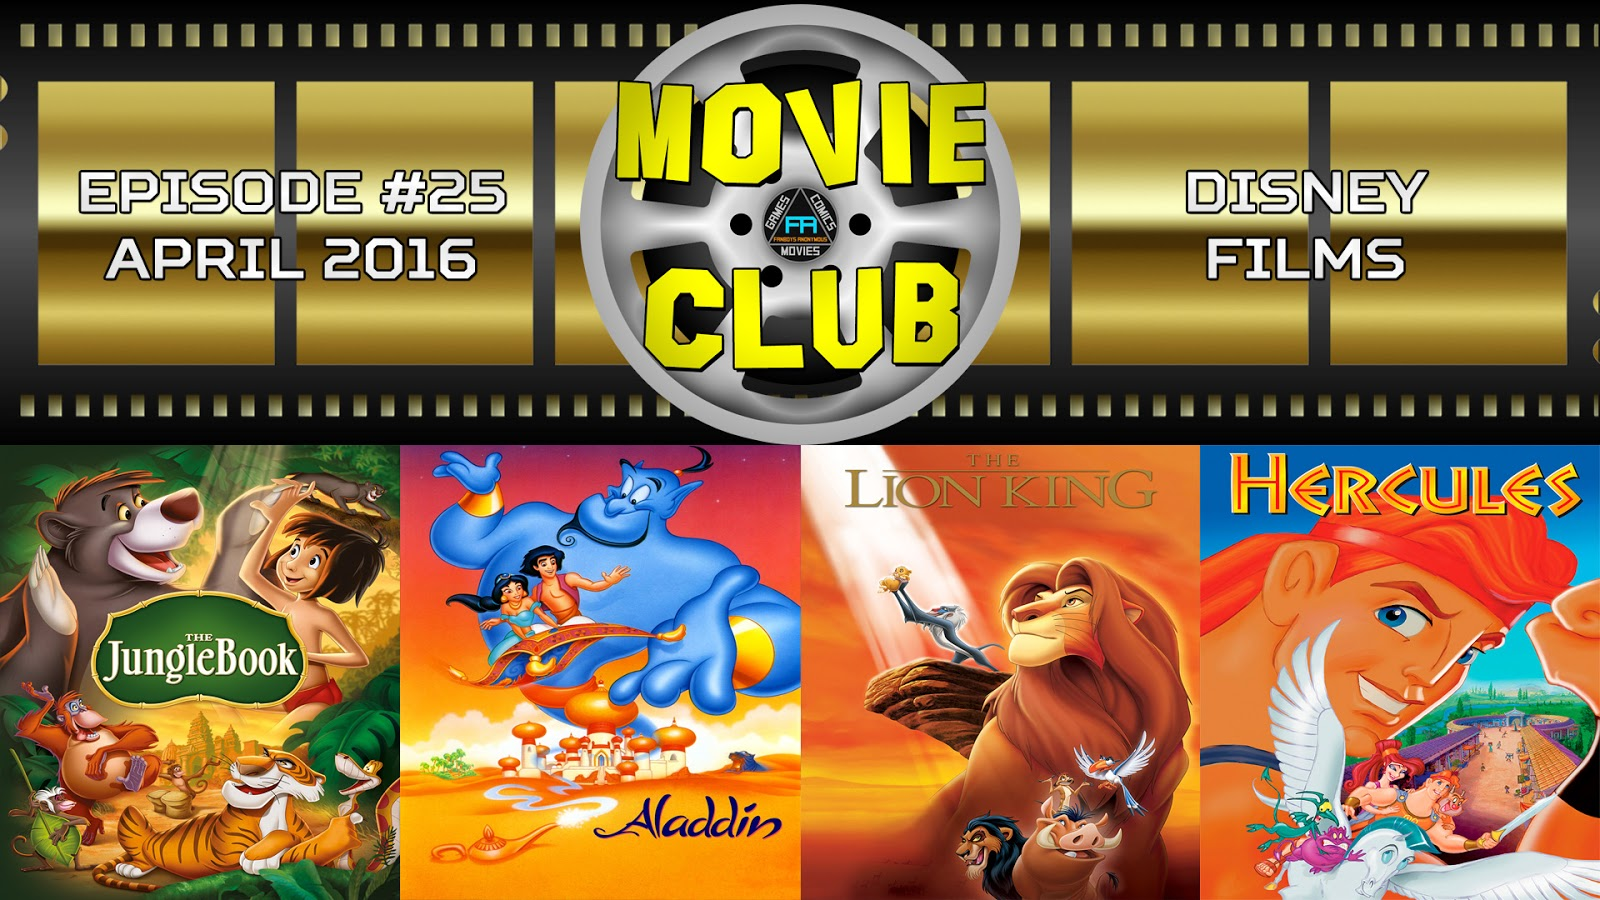 The Jungle Book, Aladdin, The Lion King, Hercules